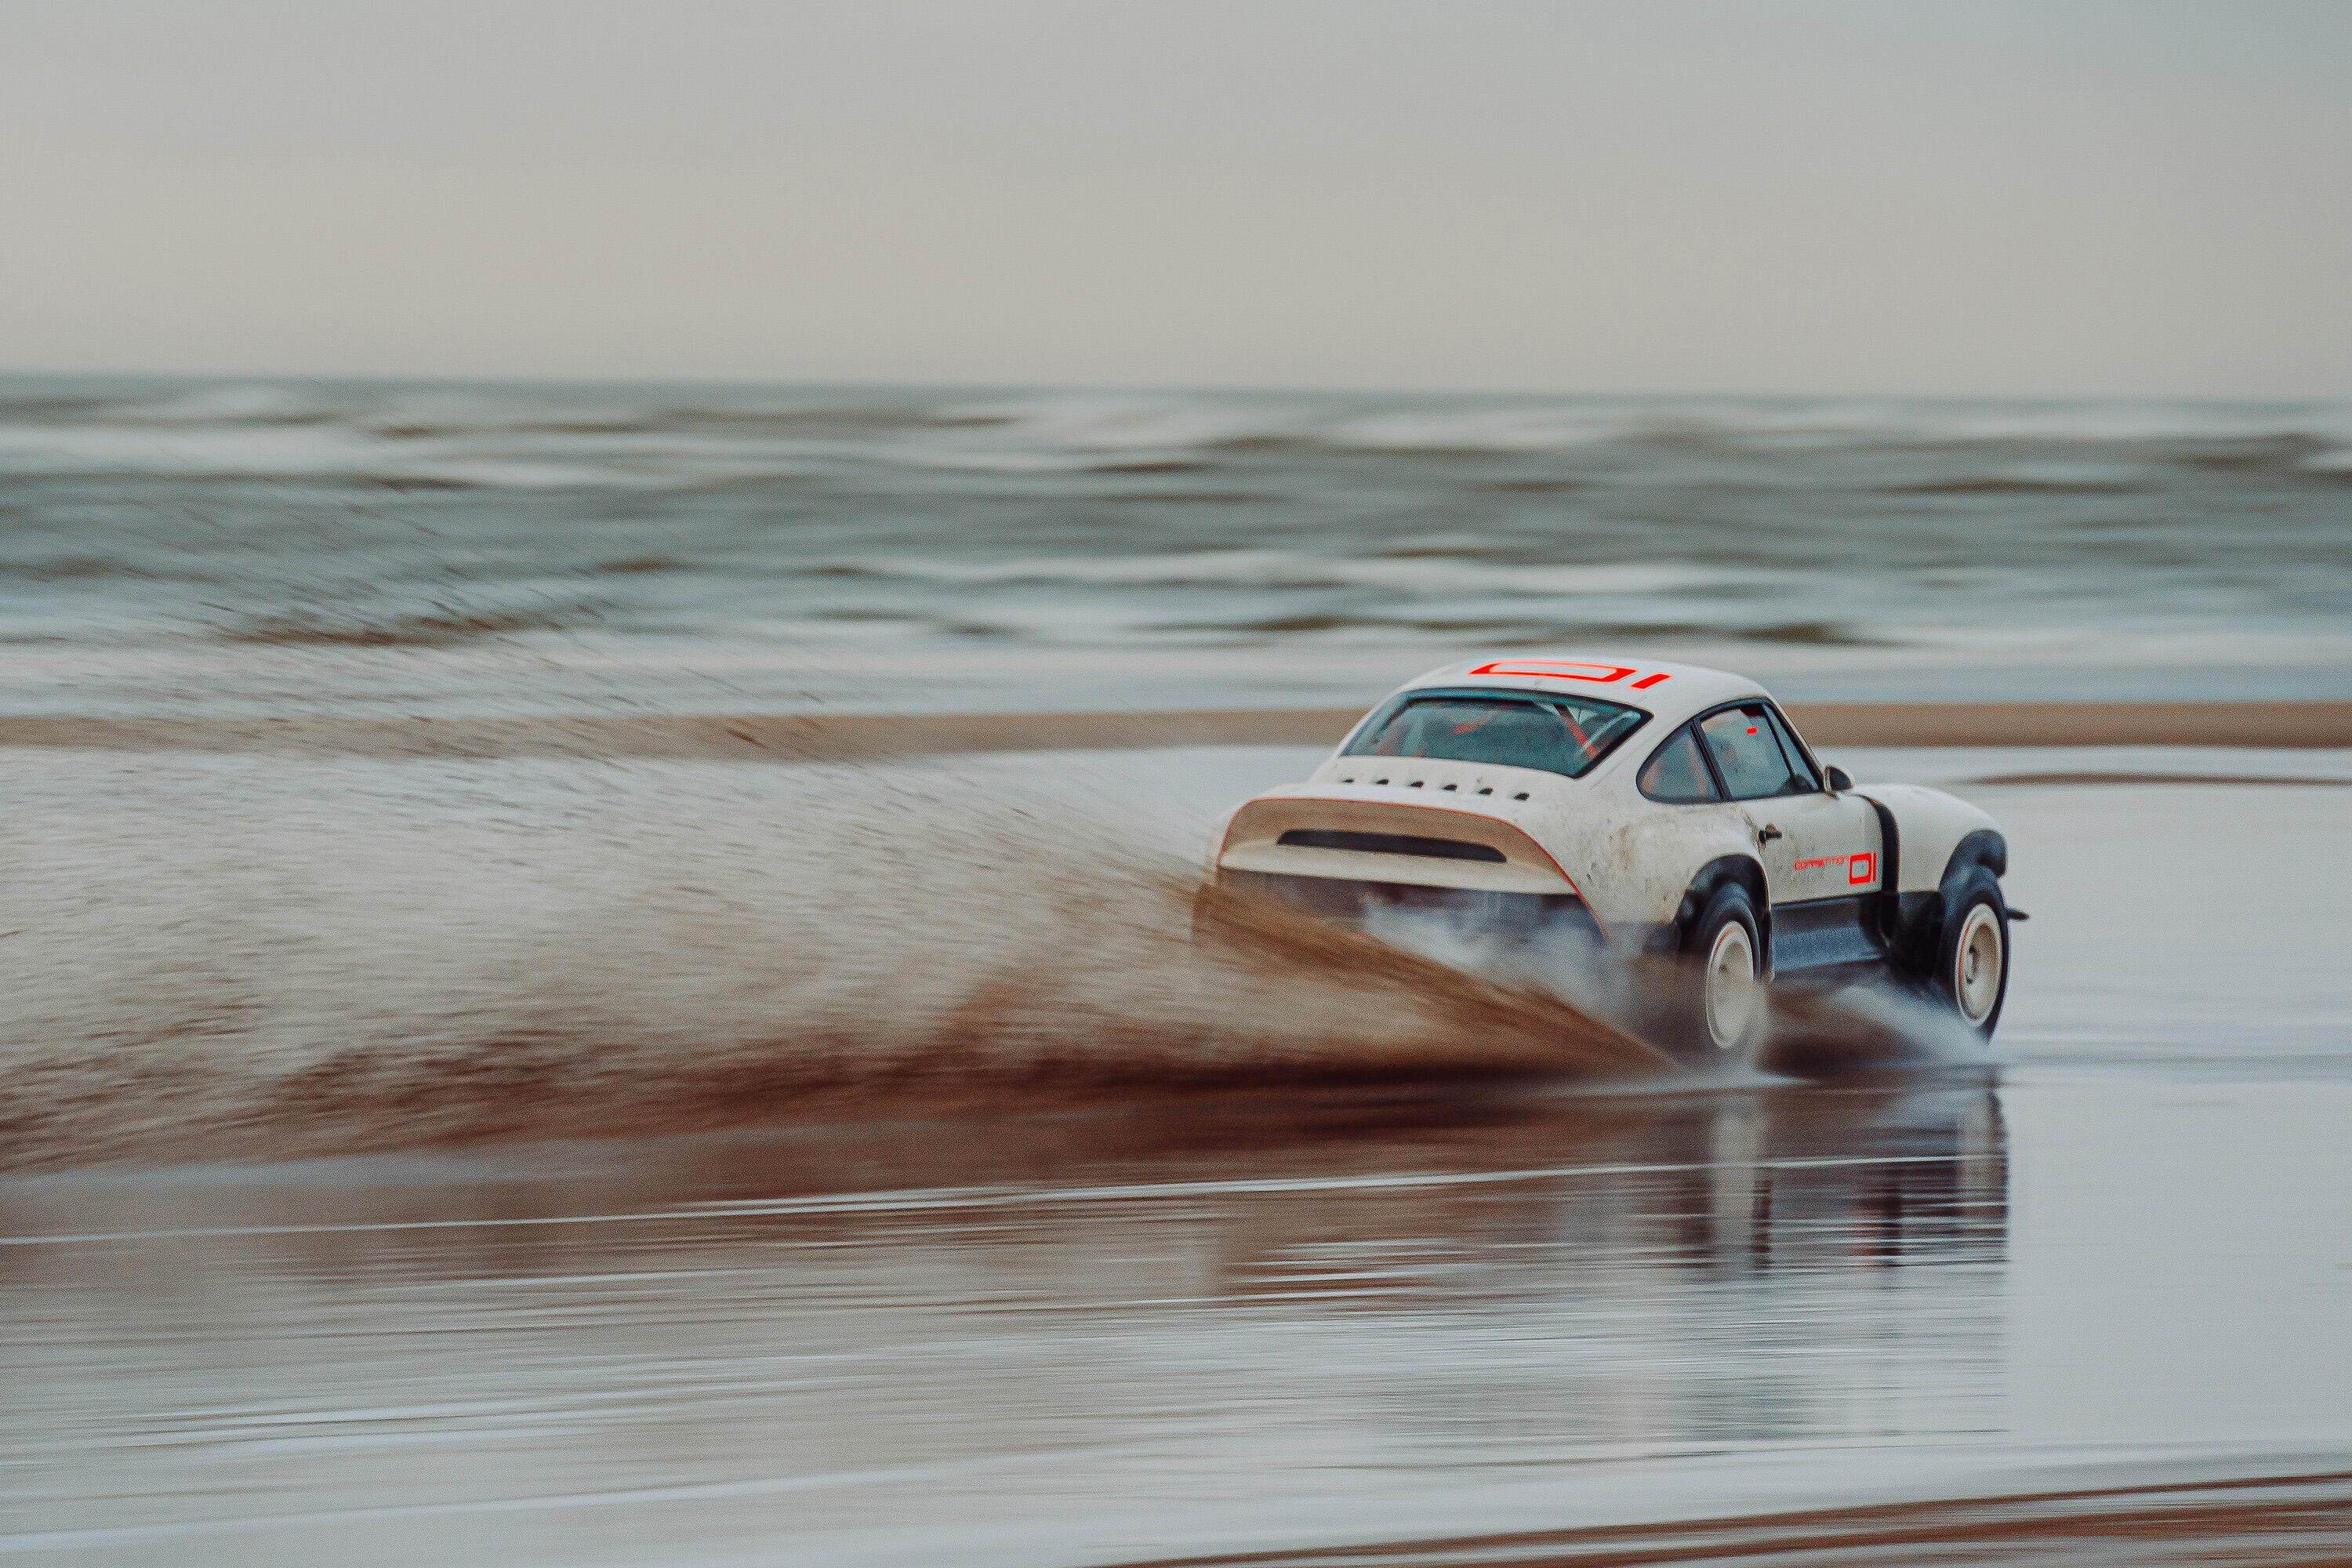 1990 Porsche 911 All-Terrain Competition Study reimagined by Singer